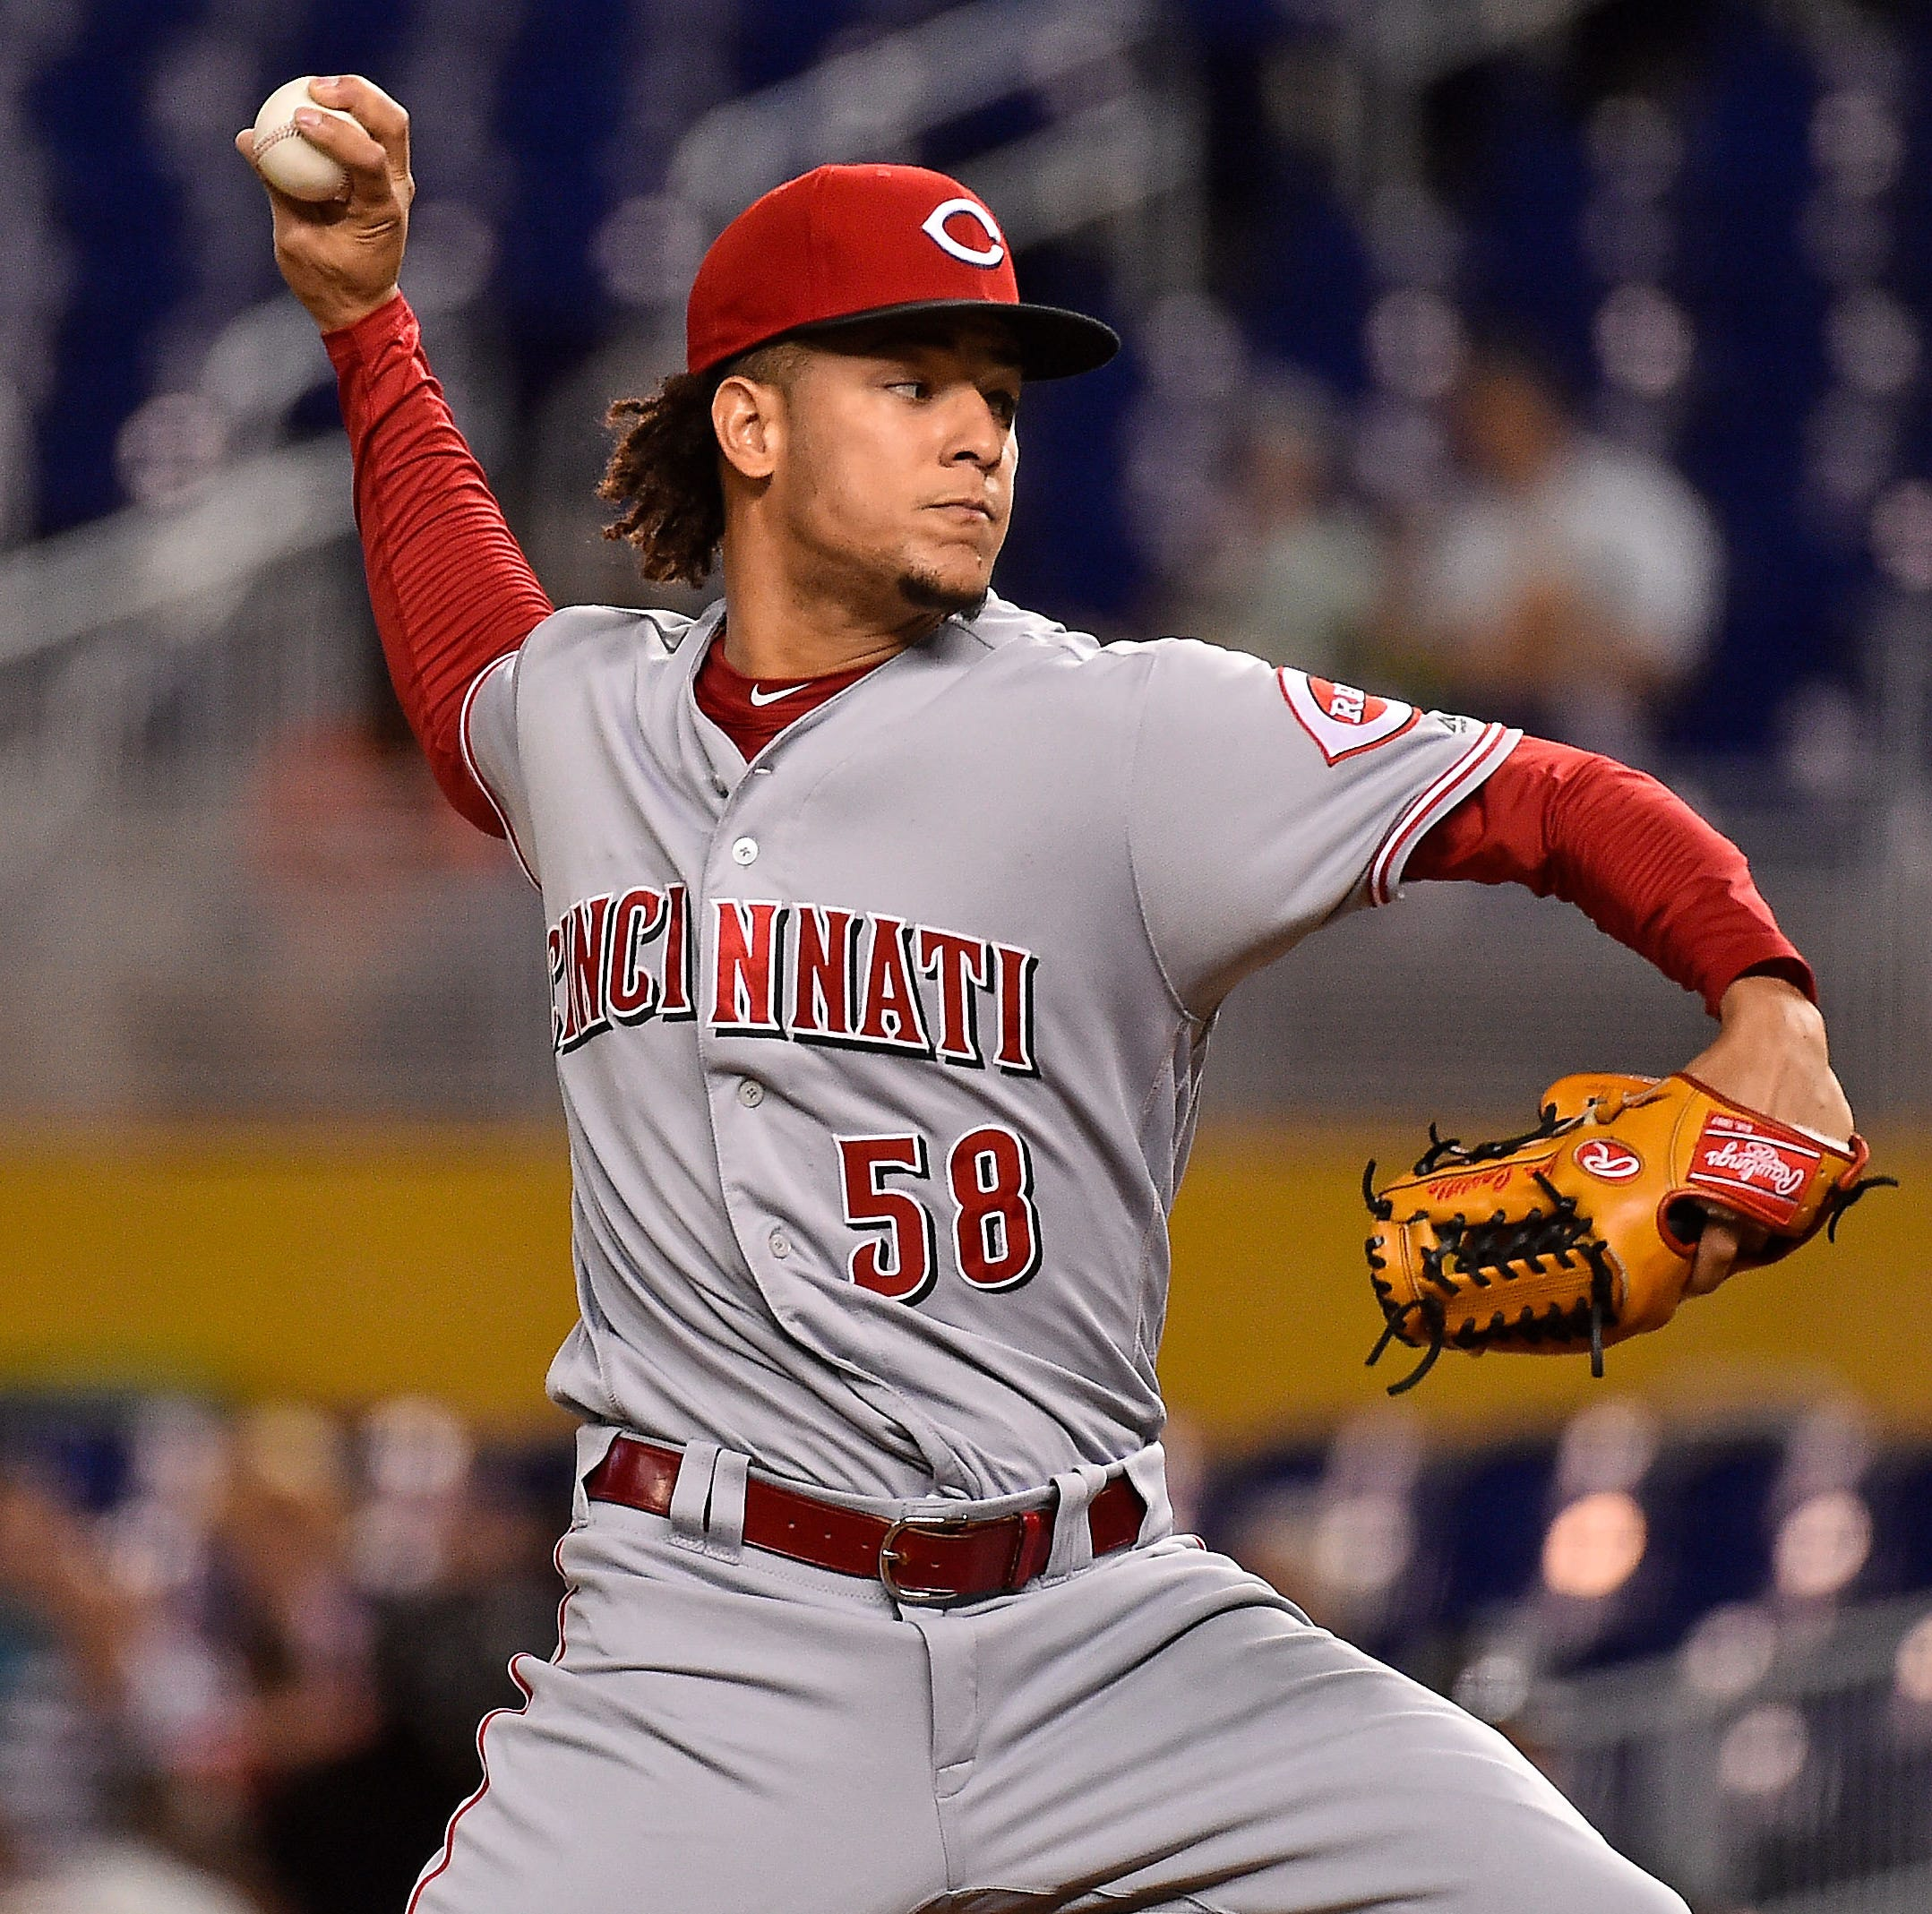 Castillo pitches longest start of career, Cincinnati Reds lose in extras to Miami Marlins